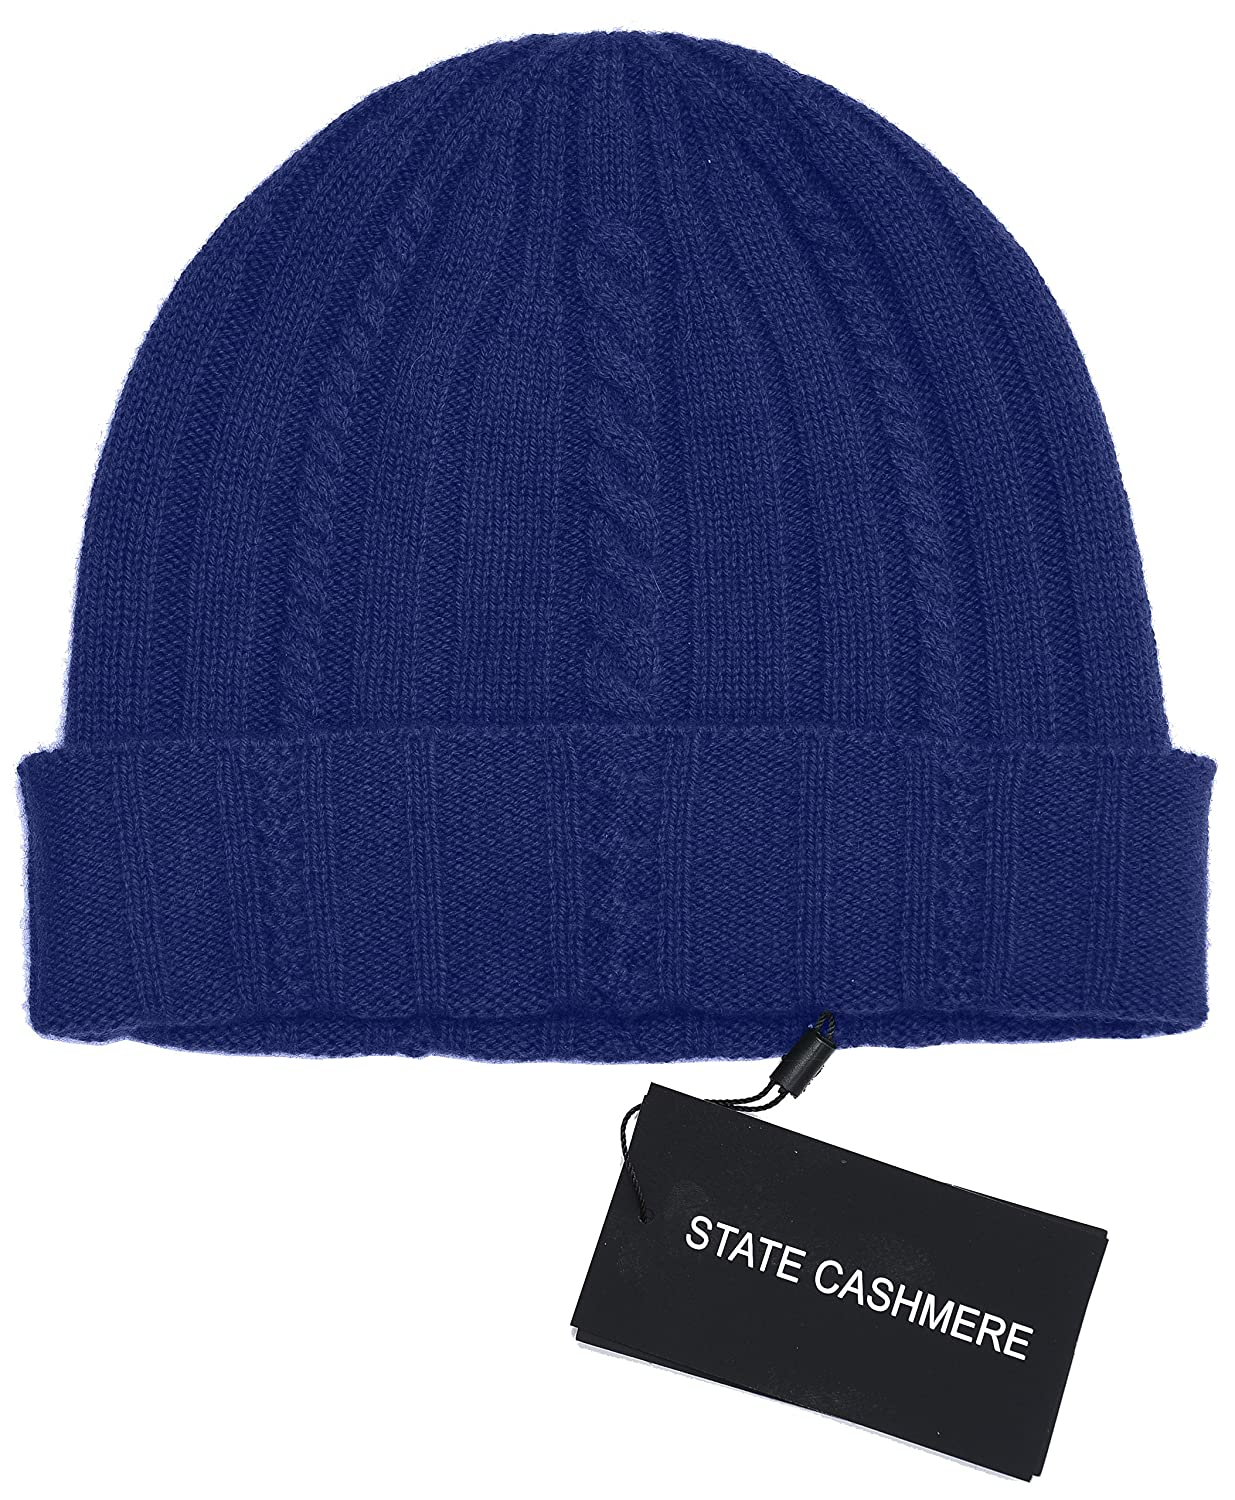 State Cashmere 100% Pure Cashmere Cable Knit Beanie Hat - Ultimate Soft, Warm and Cozy